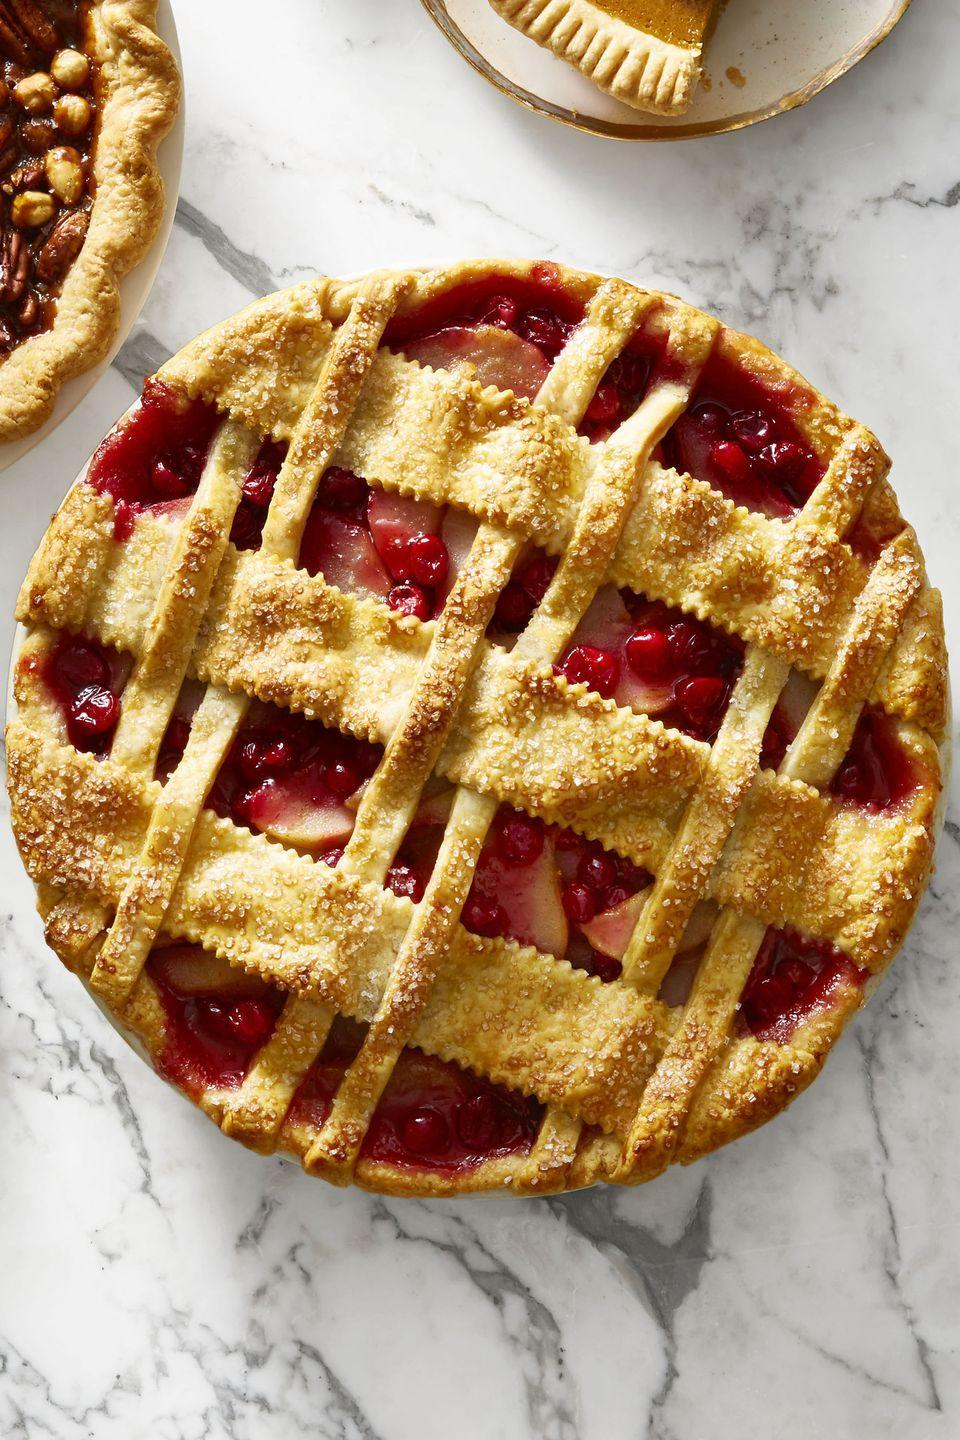 "<p><a href=""https://www.goodhousekeeping.com/holidays/thanksgiving-ideas/g112/cranberry-sauce-recipes/"" rel=""nofollow noopener"" target=""_blank"" data-ylk=""slk:Cranberry sauce"" class=""link rapid-noclick-resp"">Cranberry sauce</a> for dinner and cranberry pie for dessert — now that's one way to get your daily dose of fruit.</p><p><em><a href=""https://www.goodhousekeeping.com/food-recipes/dessert/a46629/cranberry-pear-lattice-pie-recipe/"" rel=""nofollow noopener"" target=""_blank"" data-ylk=""slk:Get the recipe for Cranberry-Pear Lattice Pie »"" class=""link rapid-noclick-resp"">Get the recipe for Cranberry-Pear Lattice Pie »</a></em></p><p><strong>RELATED: </strong><a href=""https://www.goodhousekeeping.com/food-recipes/dessert/a23899901/how-to-make-pie-crust/"" rel=""nofollow noopener"" target=""_blank"" data-ylk=""slk:How to Make Perfectly Flaky Pie Crust"" class=""link rapid-noclick-resp"">How to Make Perfectly Flaky Pie Crust</a></p>"